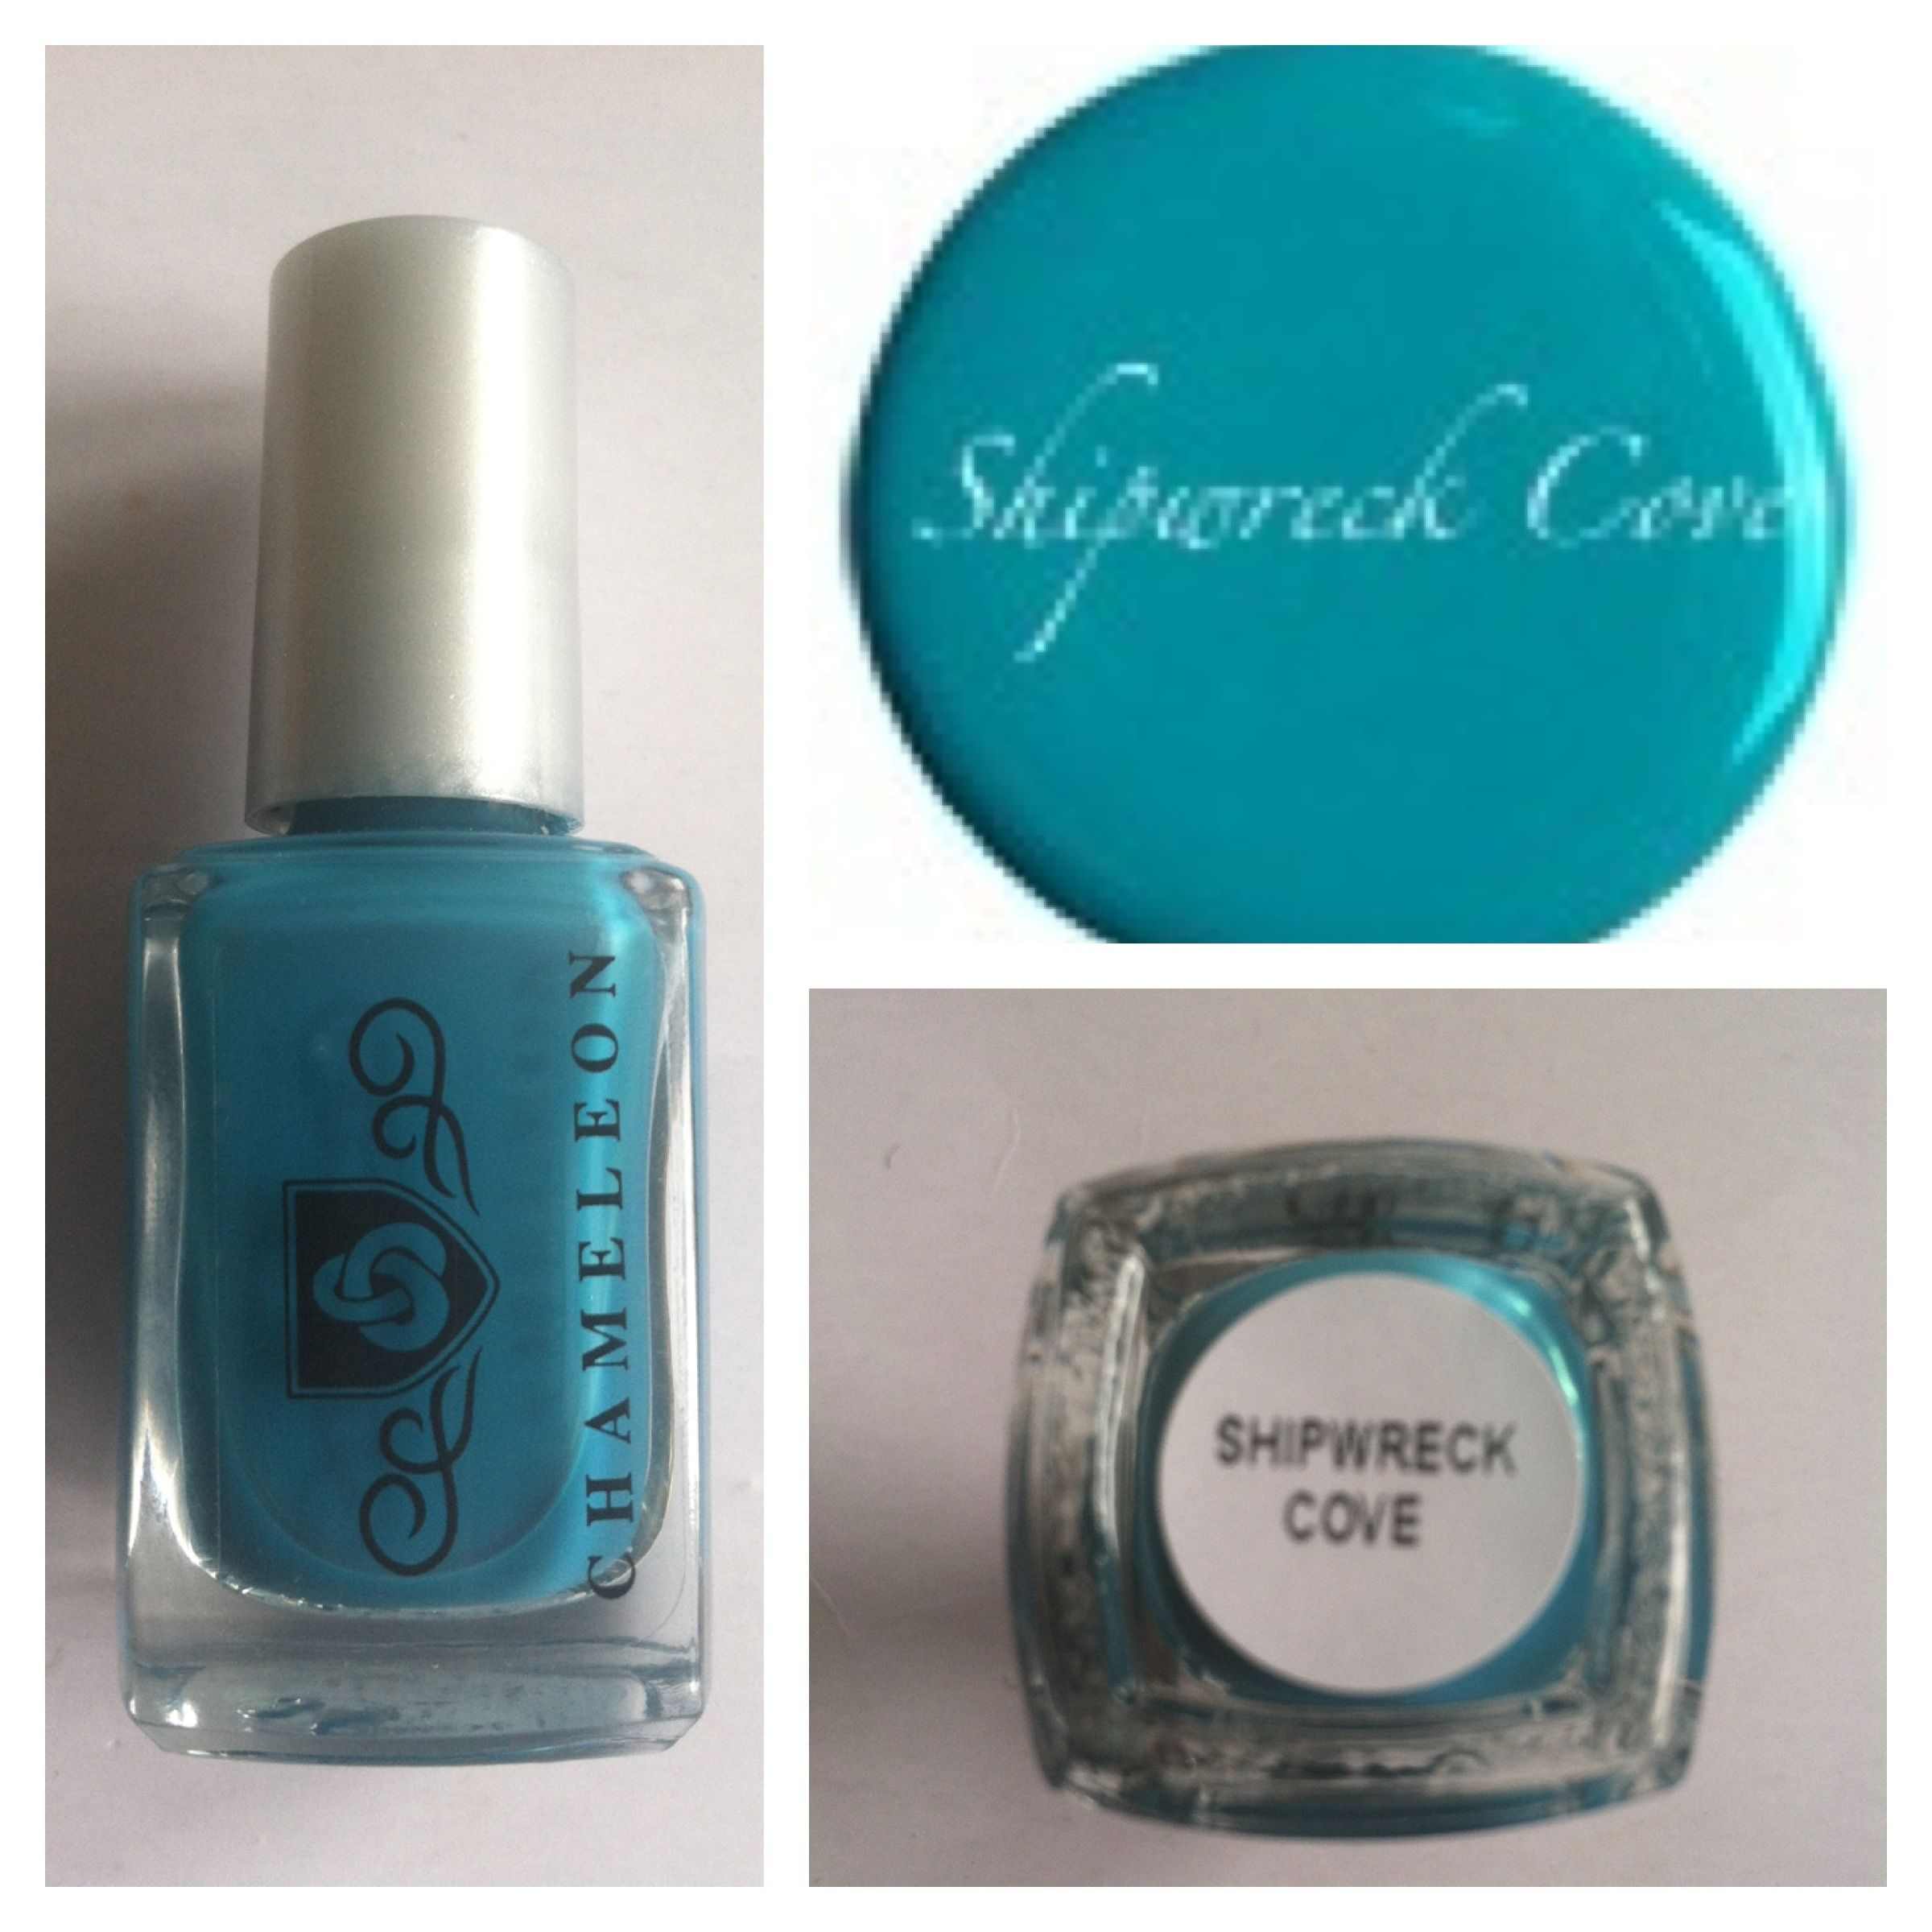 Chameleon Nail Lacquer Shipwreck Cove Fast Drying, Long Lasting ...